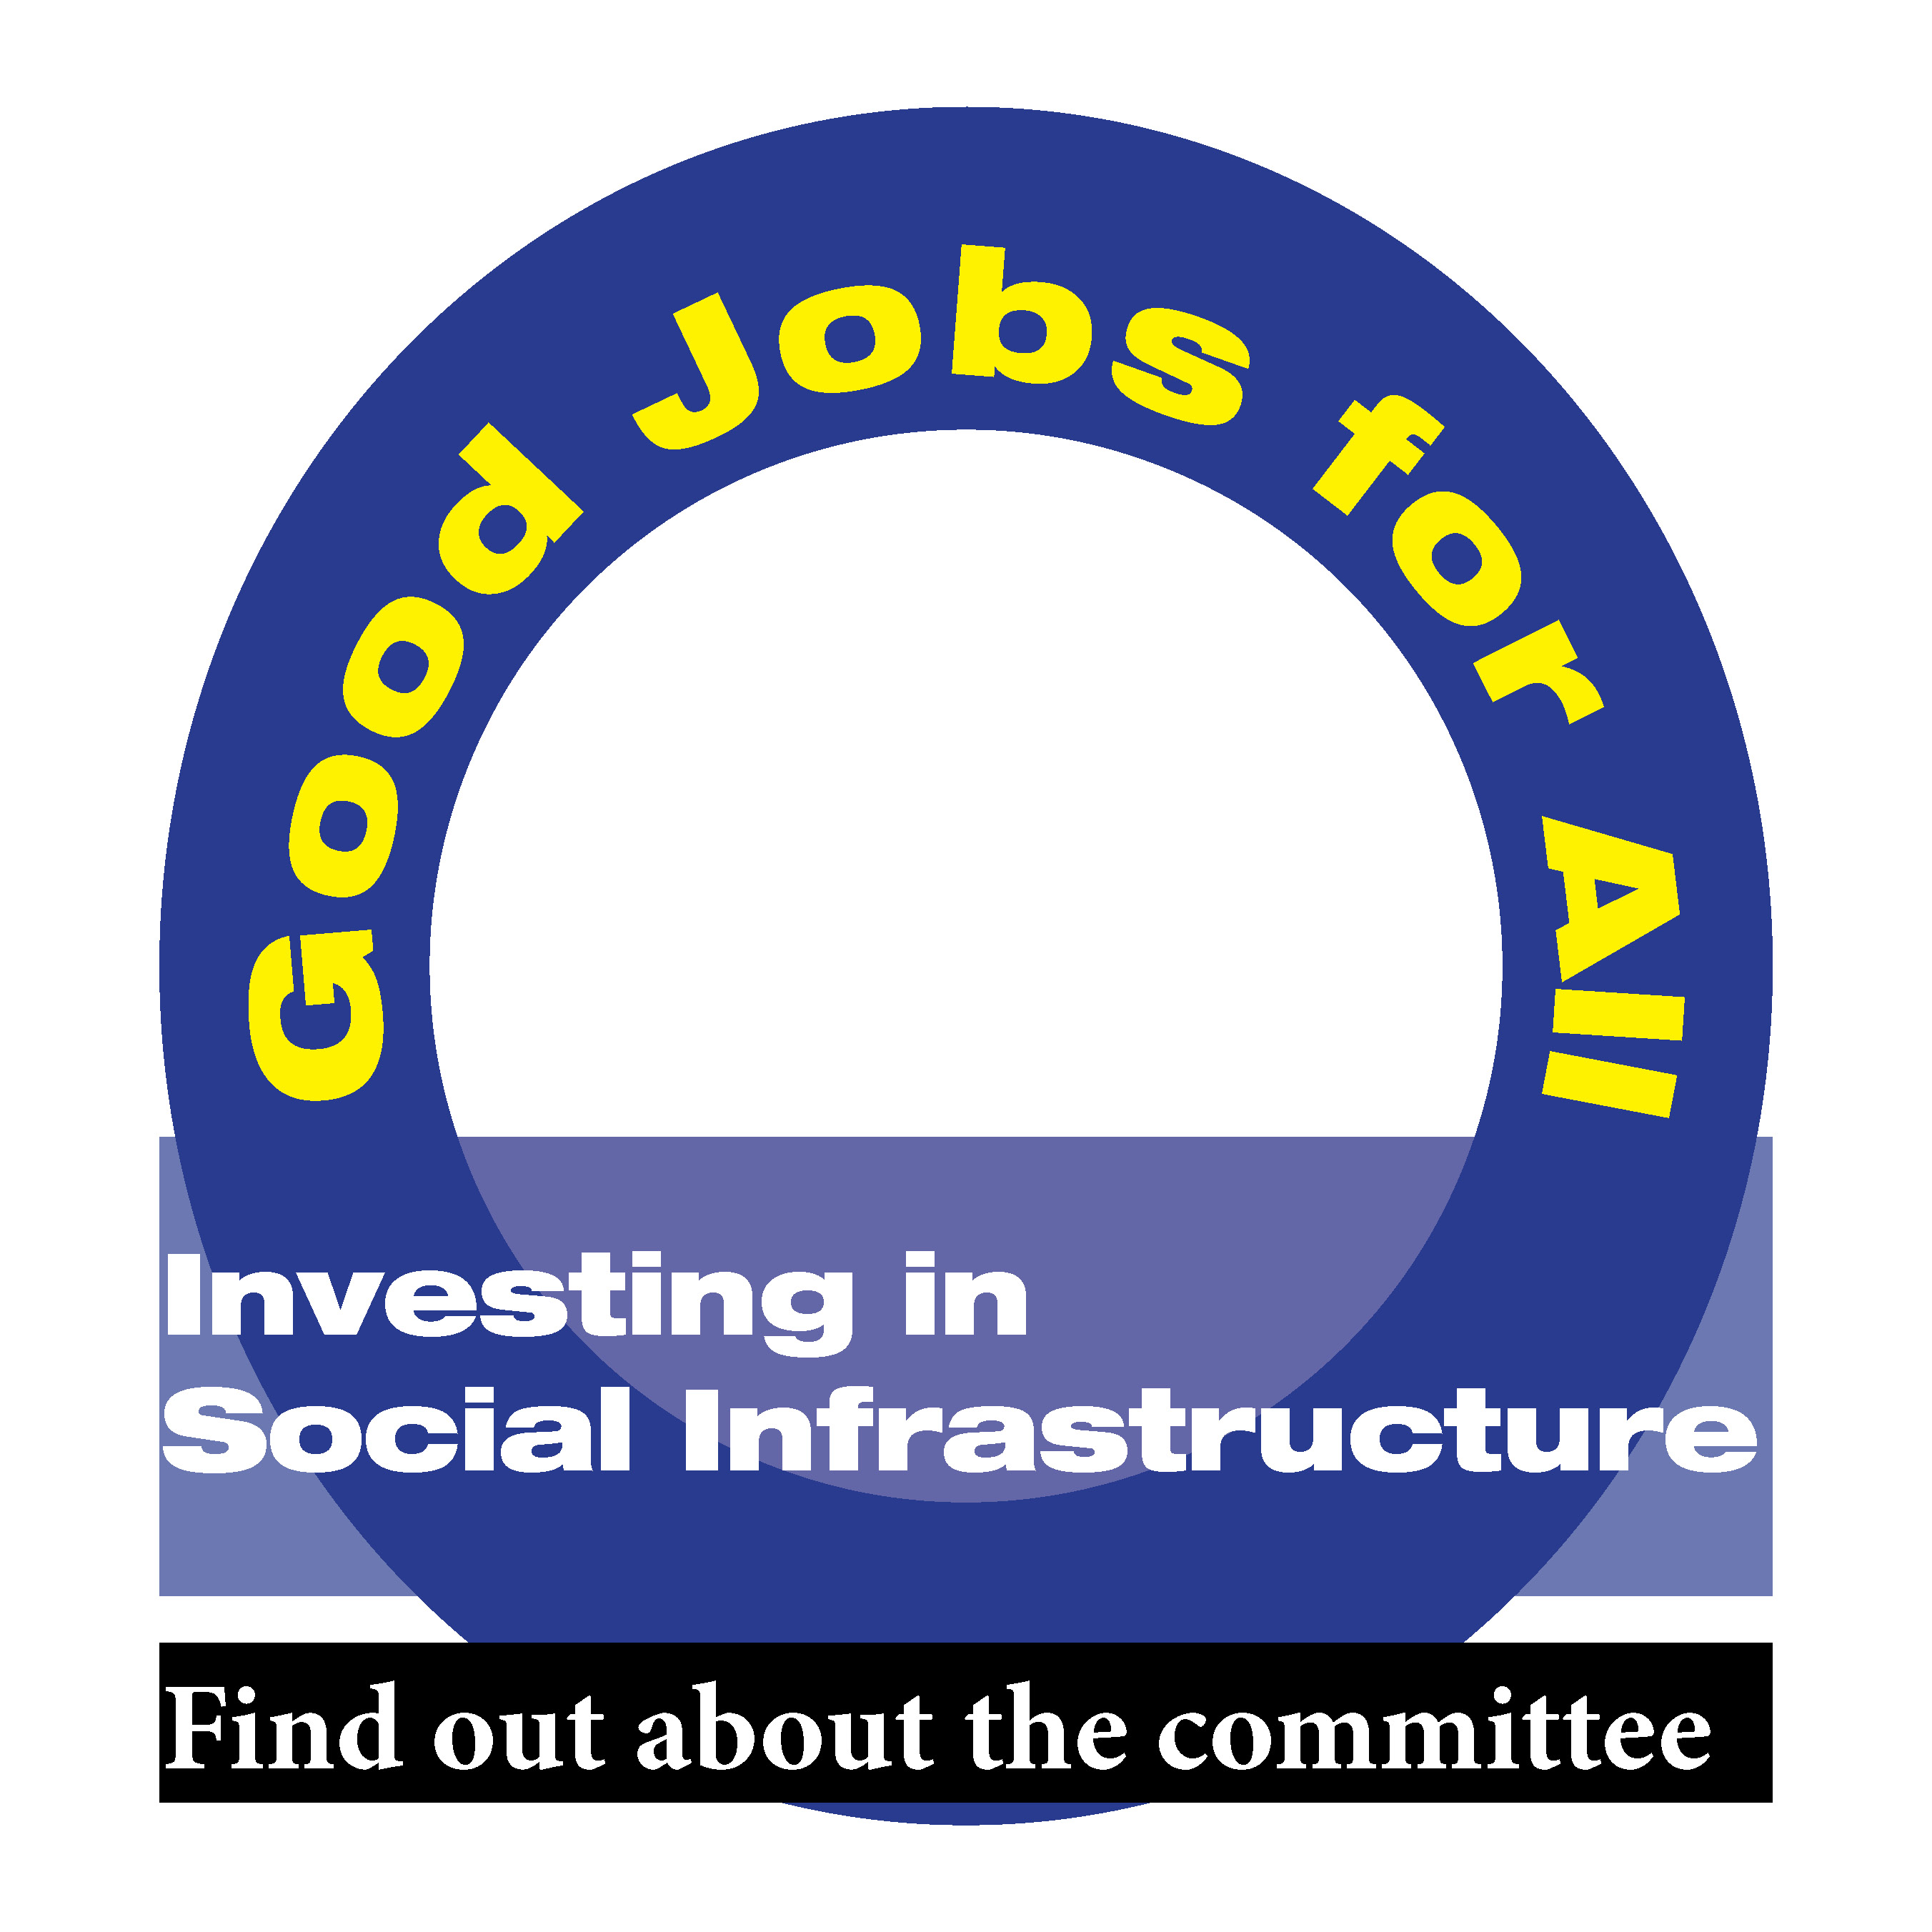 Investing in social infrastructure